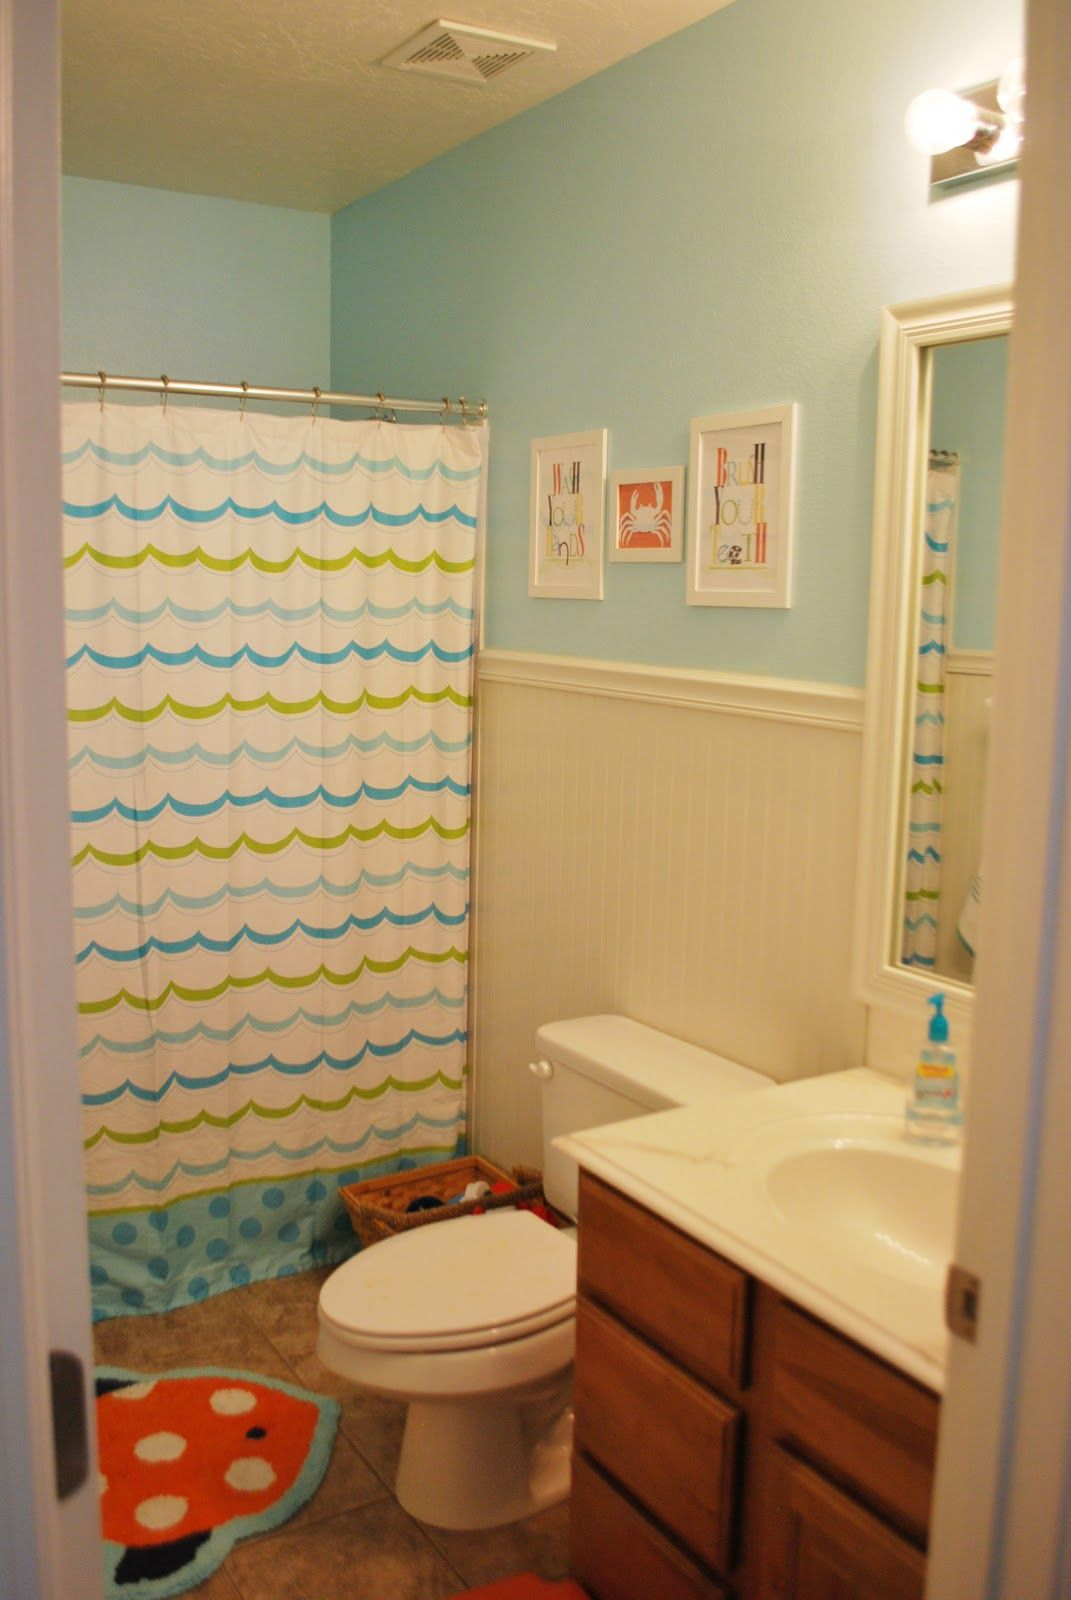 25 Cute And Colorful Kids Bathroom Ideas [Fun Design Solutions For Your Home